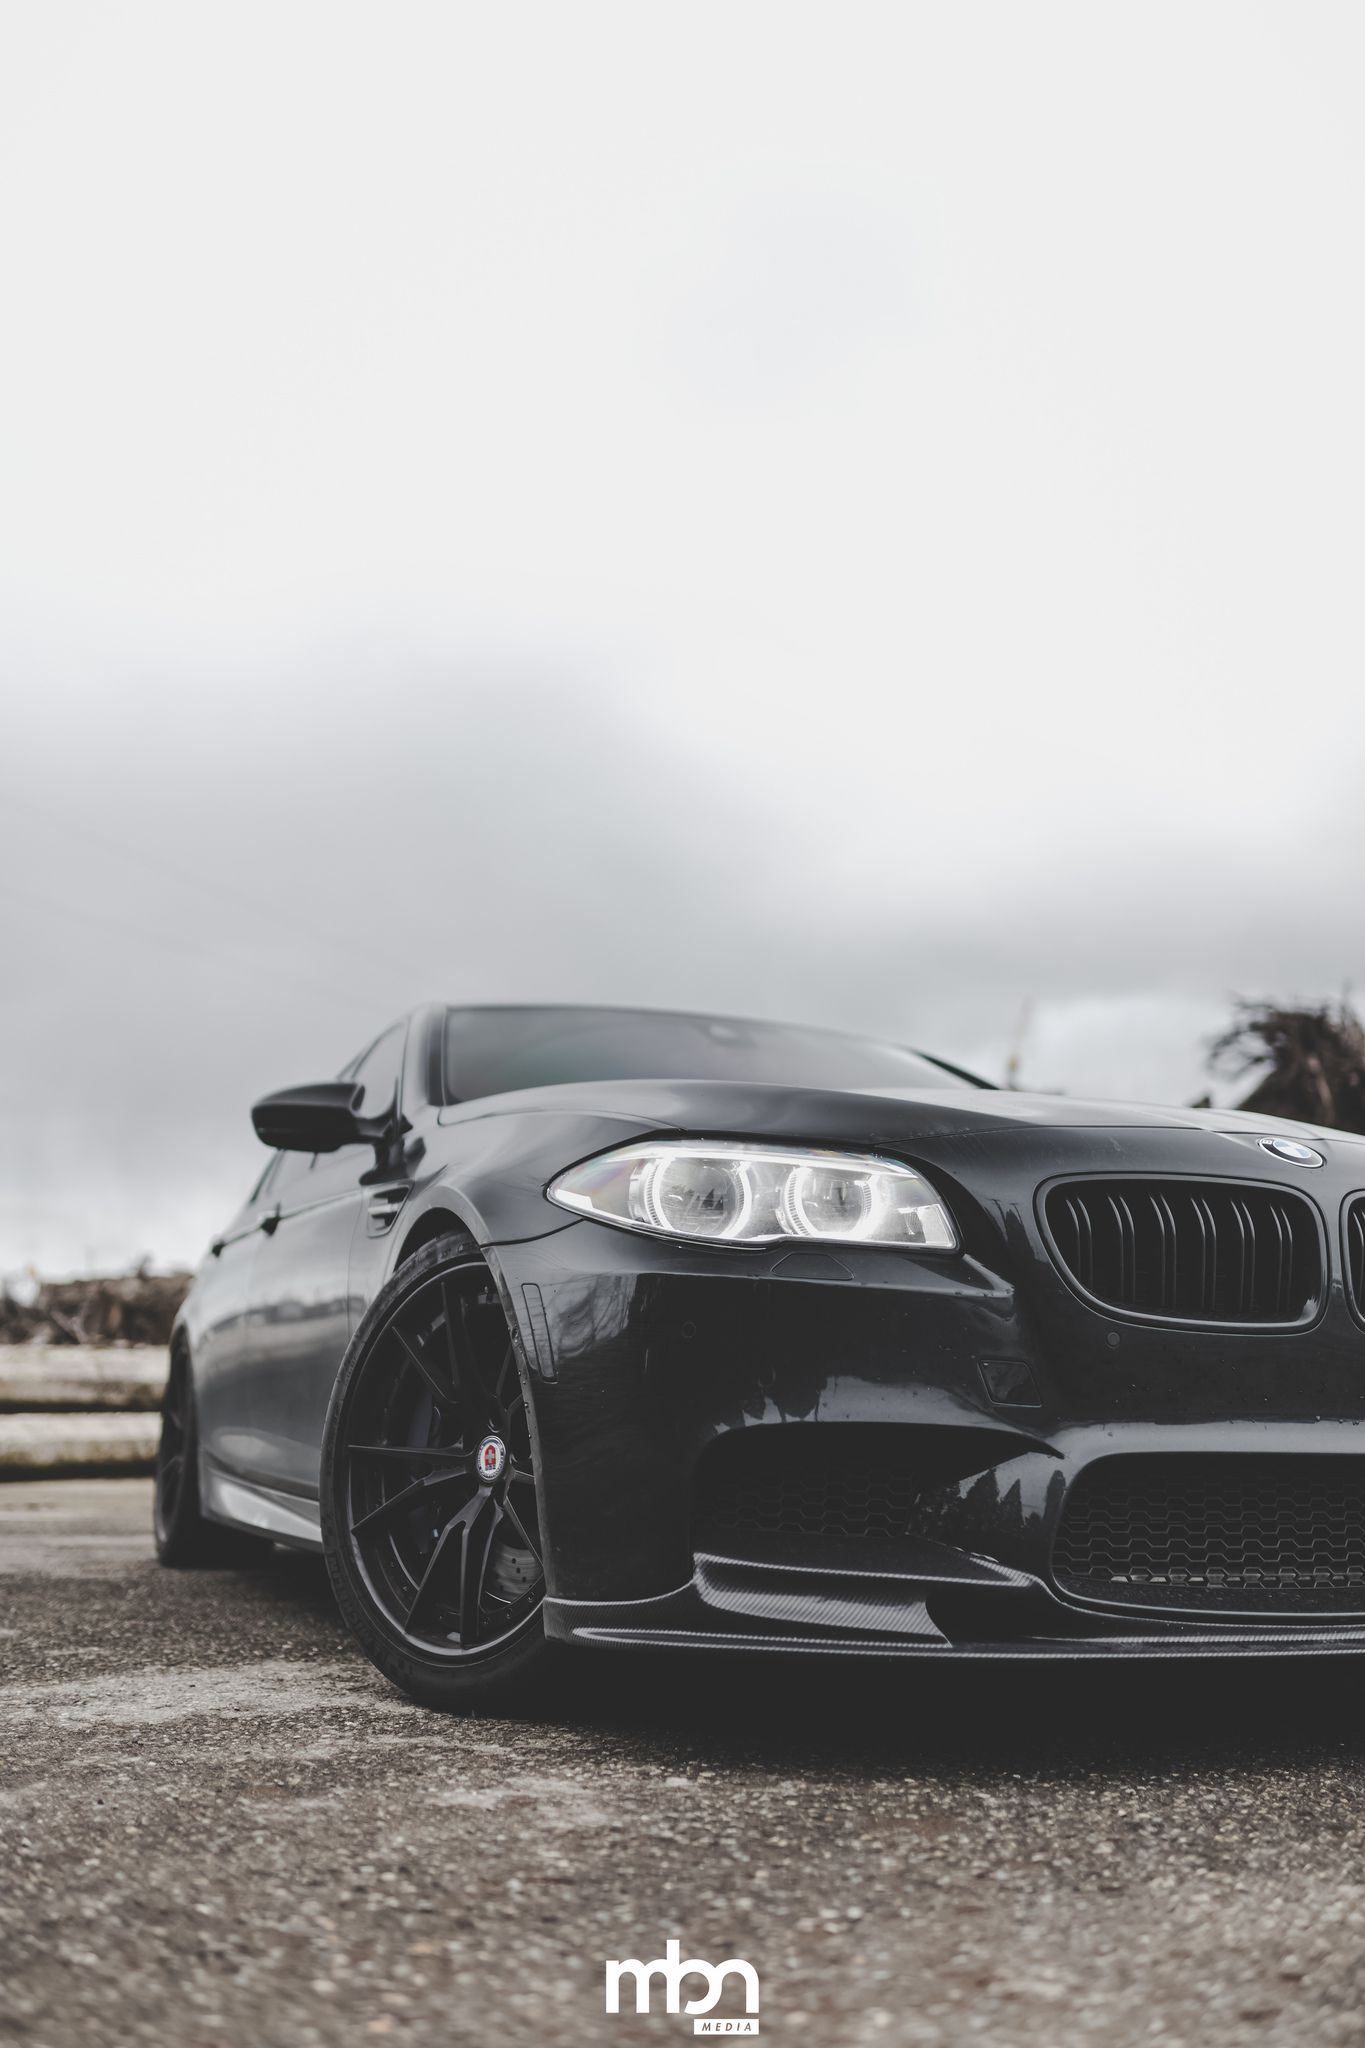 BMW F10 - iPhone & Android theme